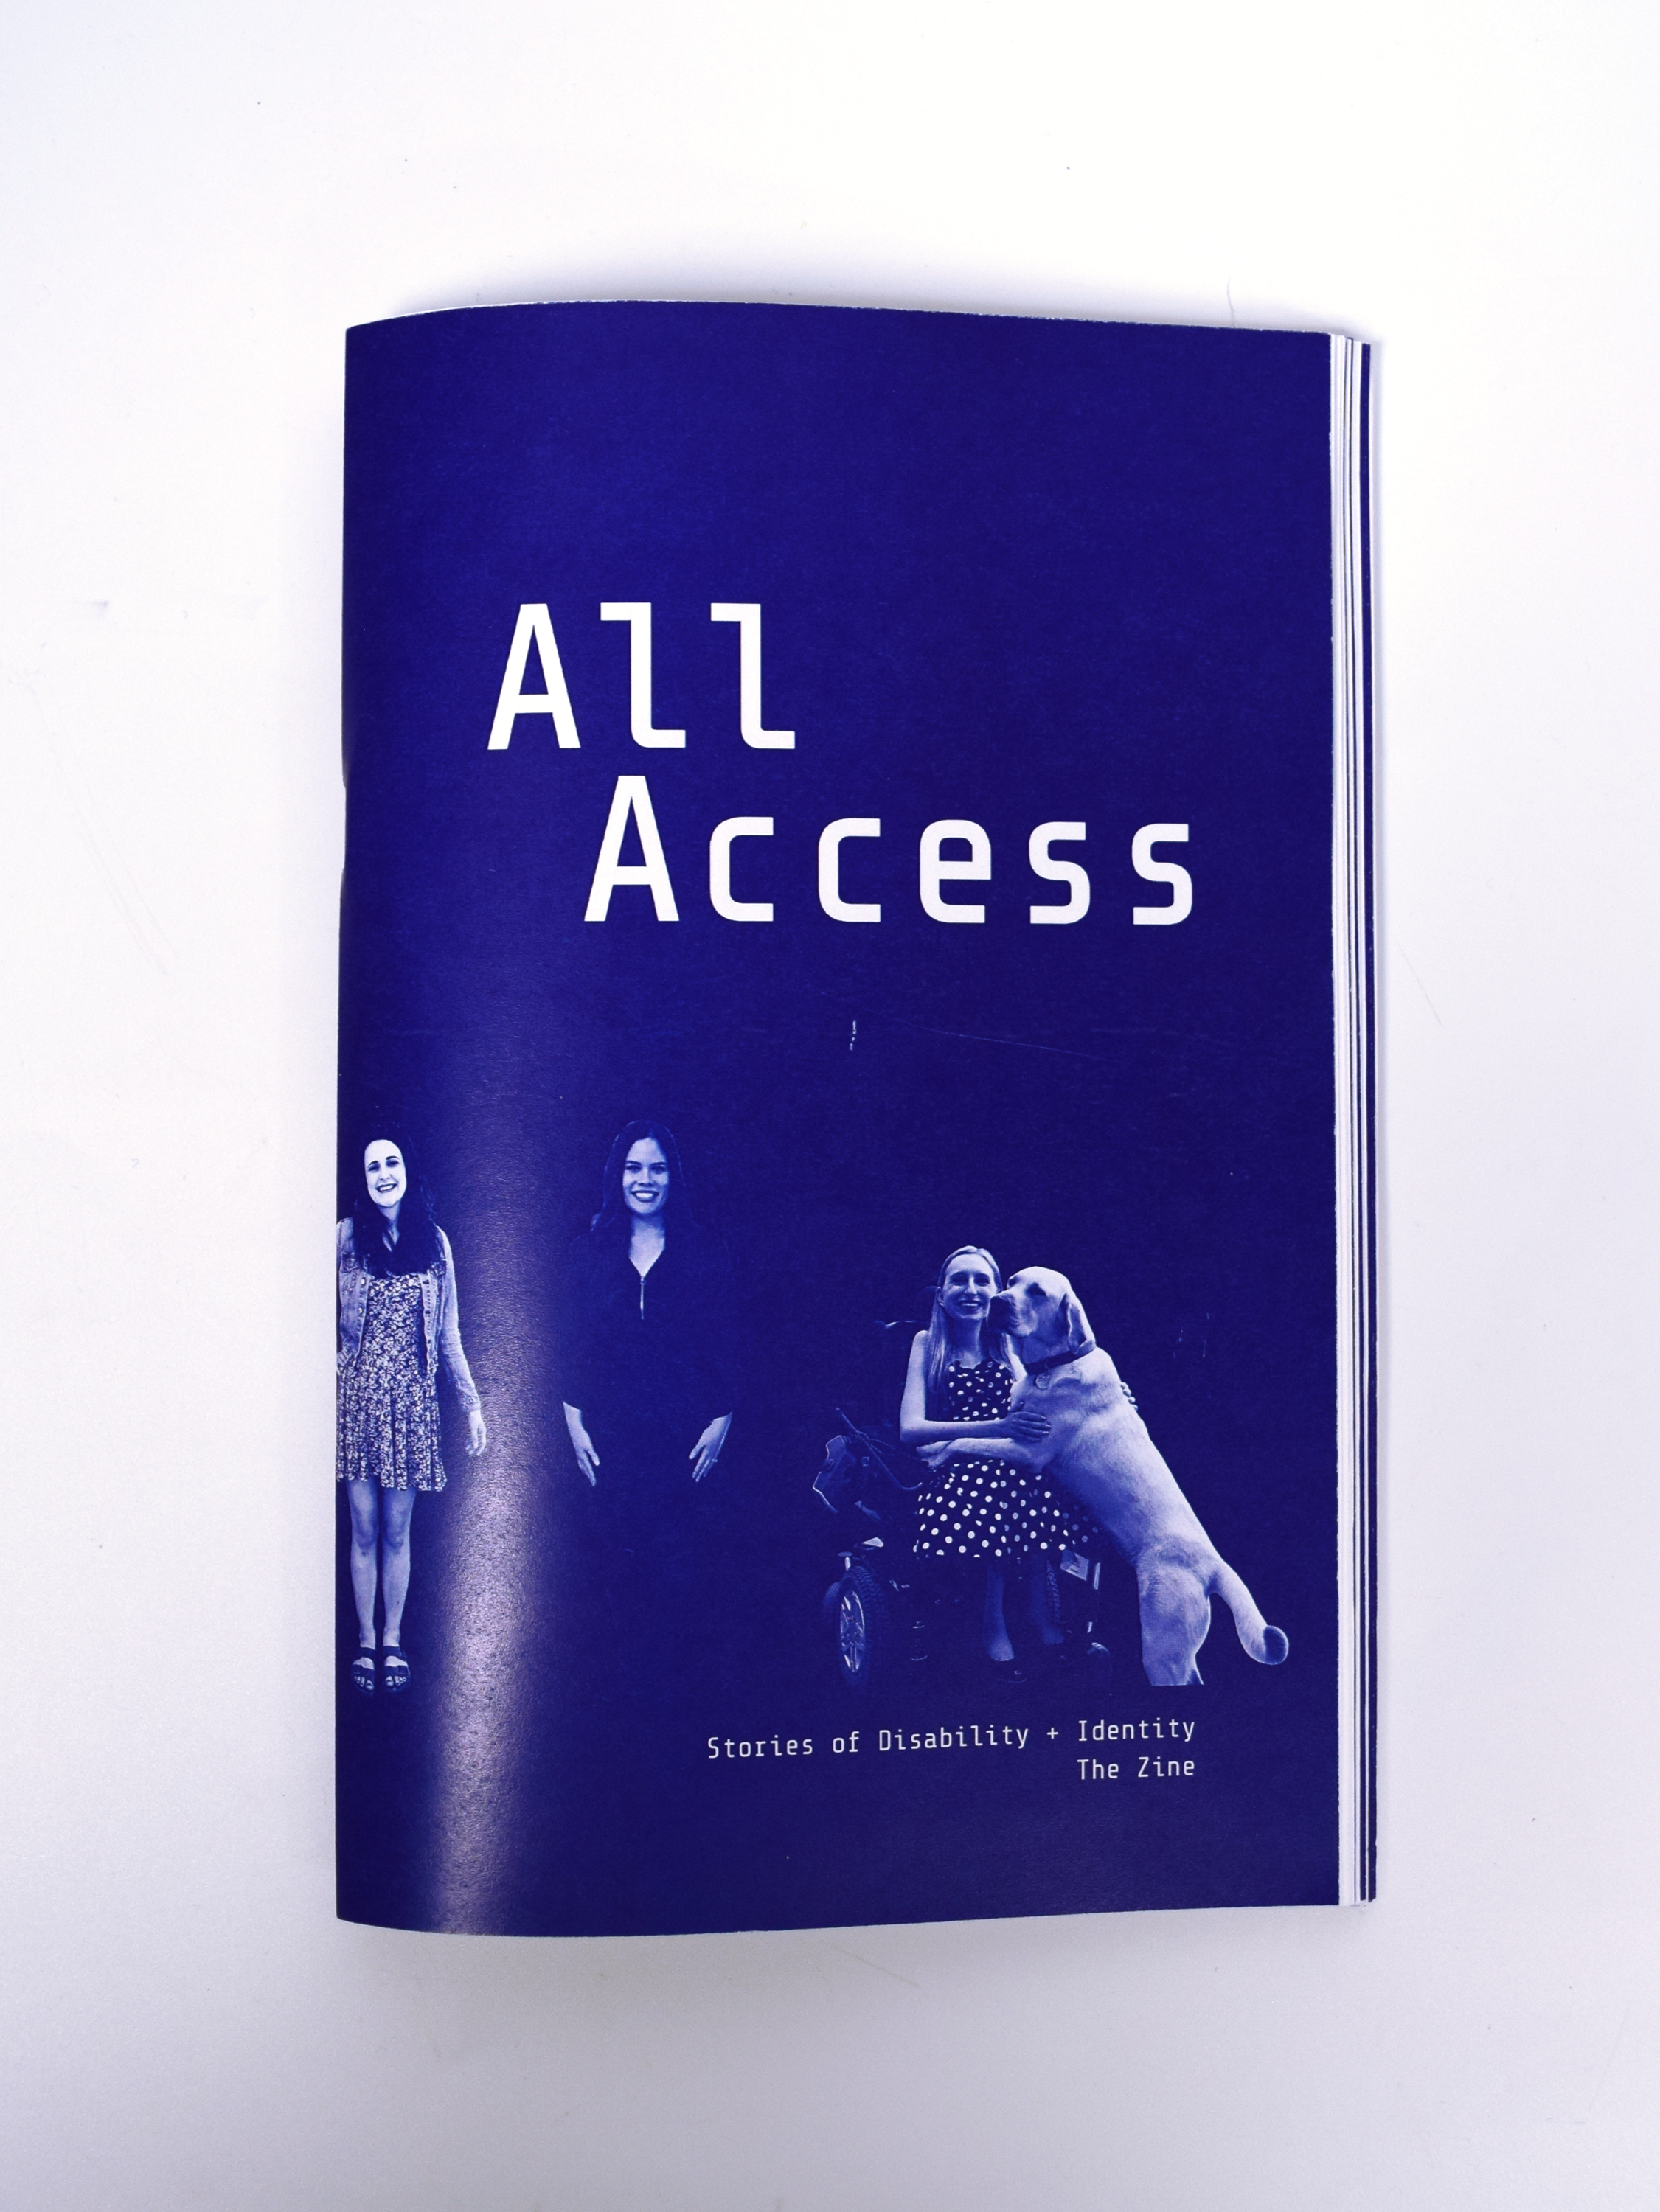 allaccess-zine-cover.png